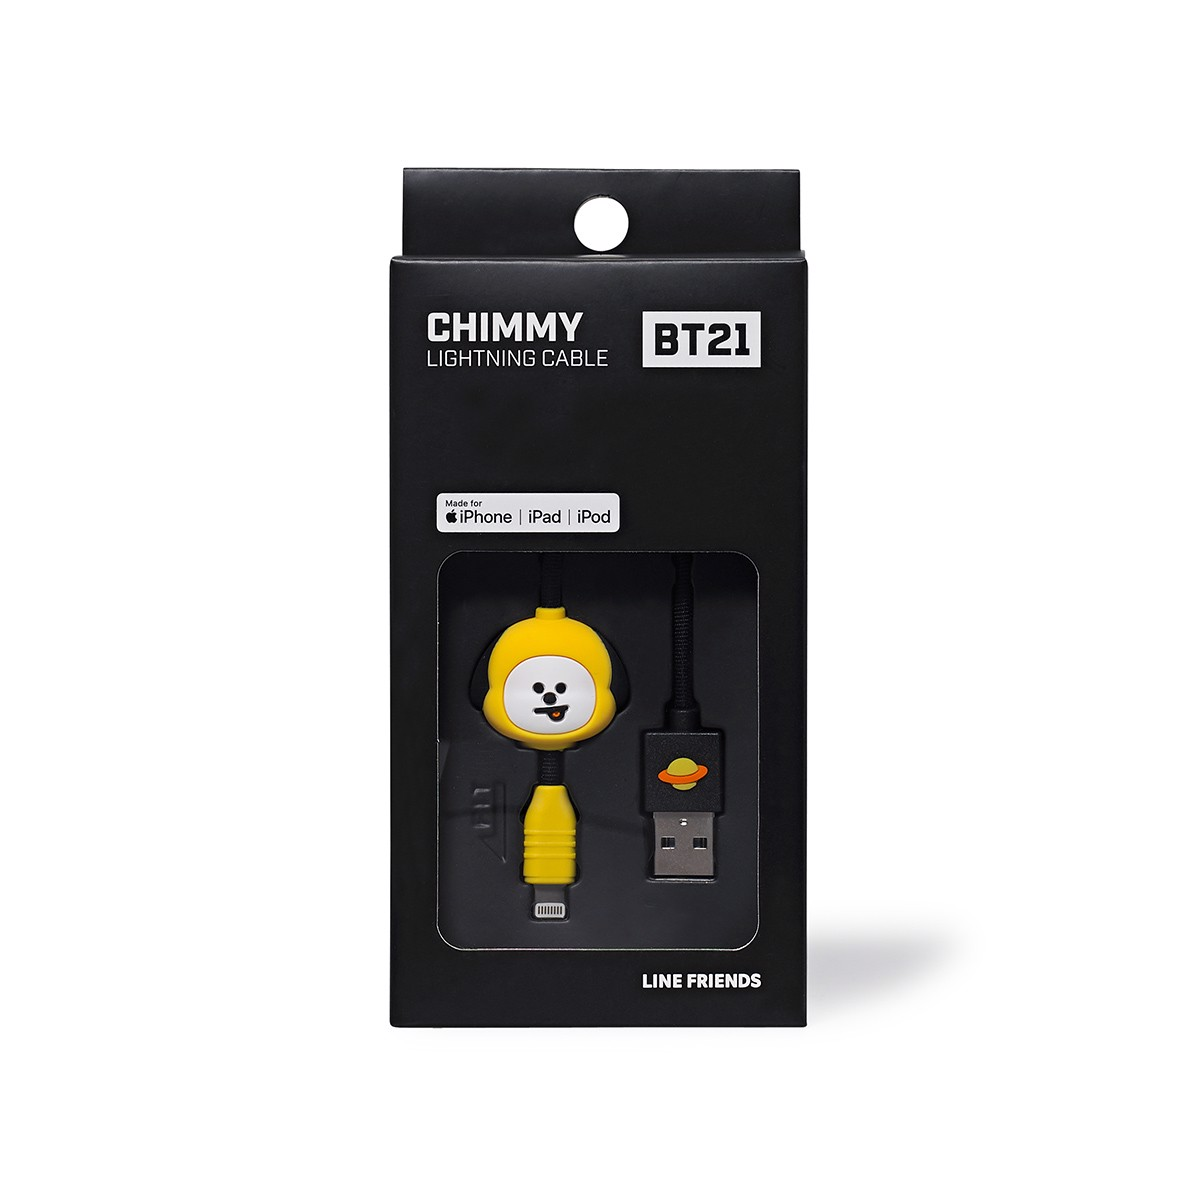 bt21 official charger cable chimmy